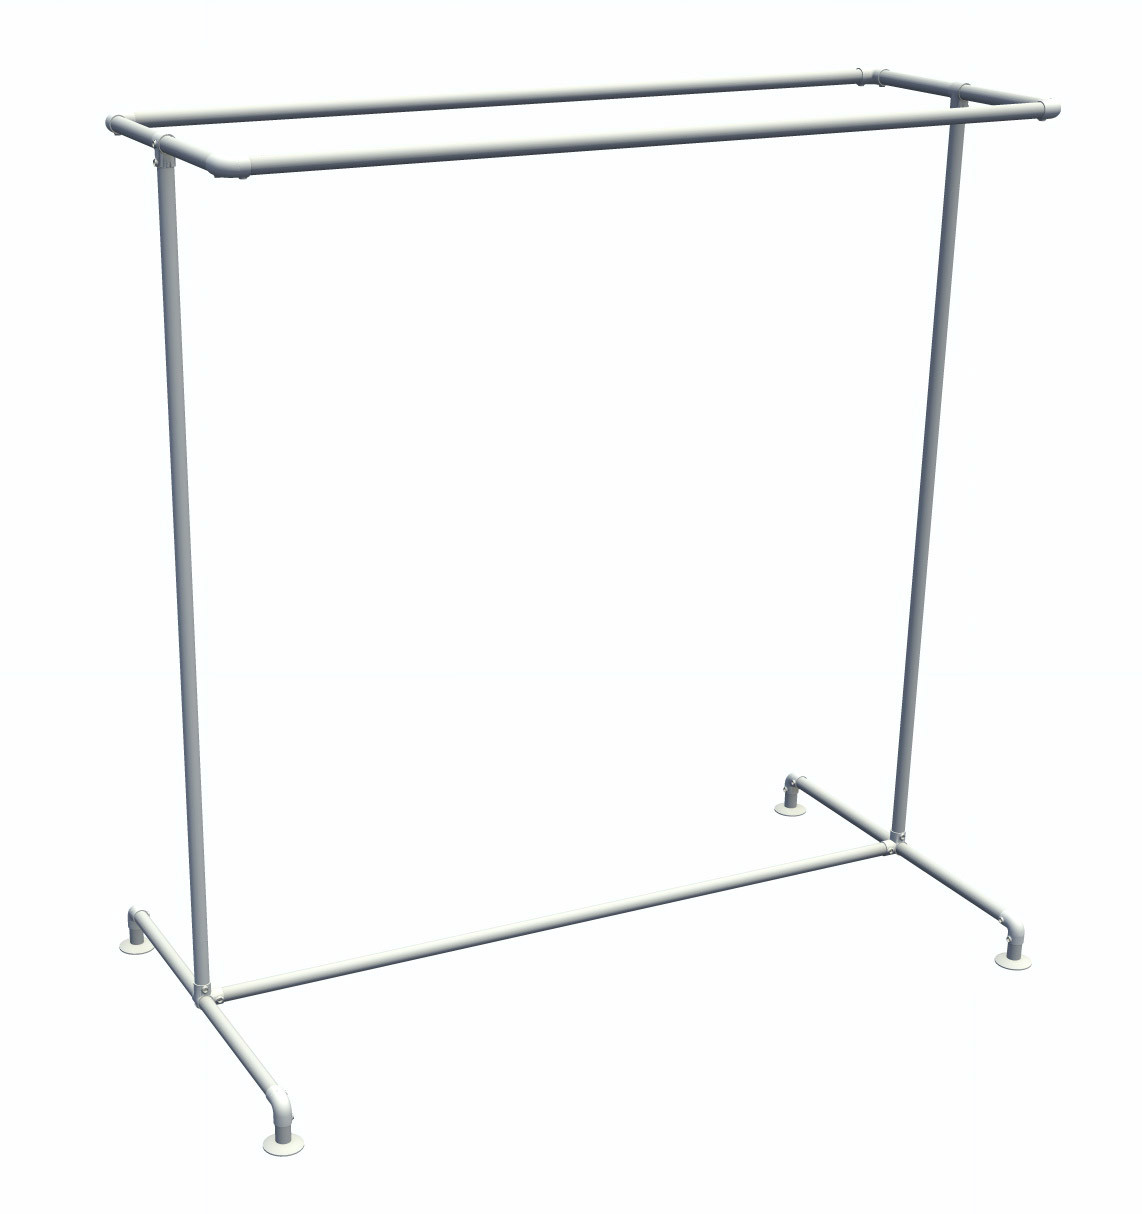 Pipe Clothing Rack Free Standing Double Rail Kee